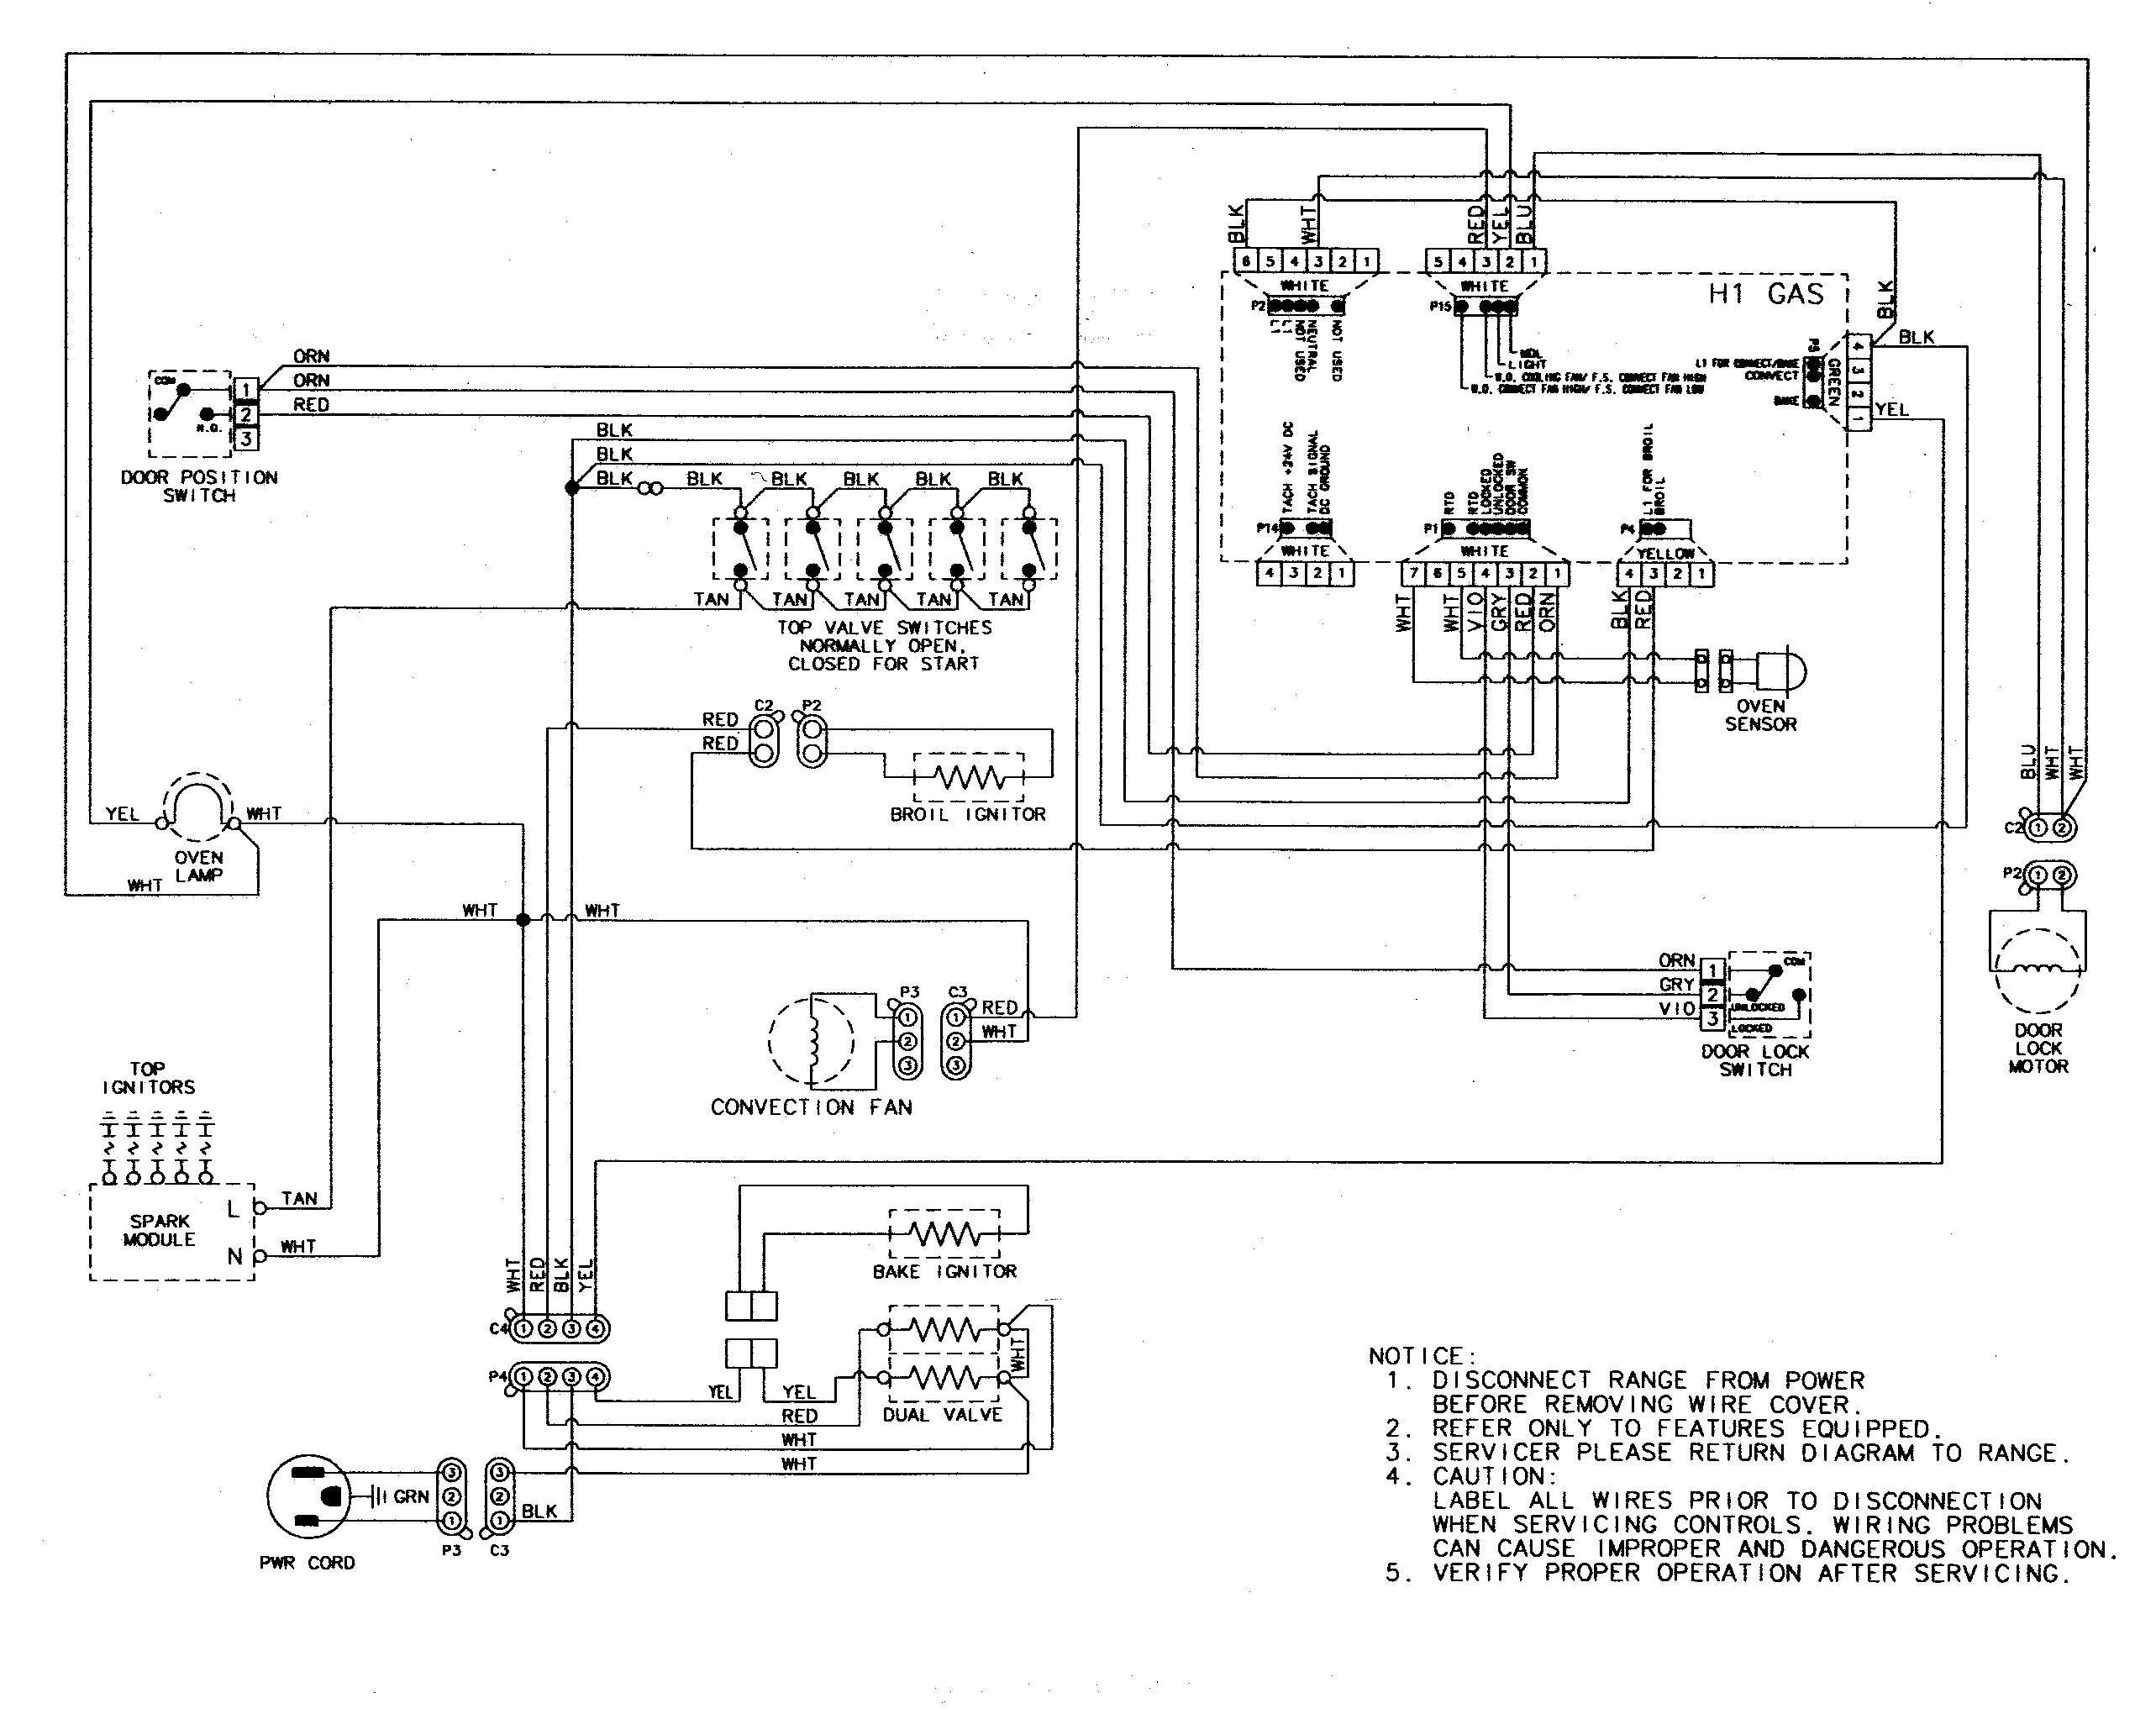 Whirlpool Washer Wiring Schematics And Diagram